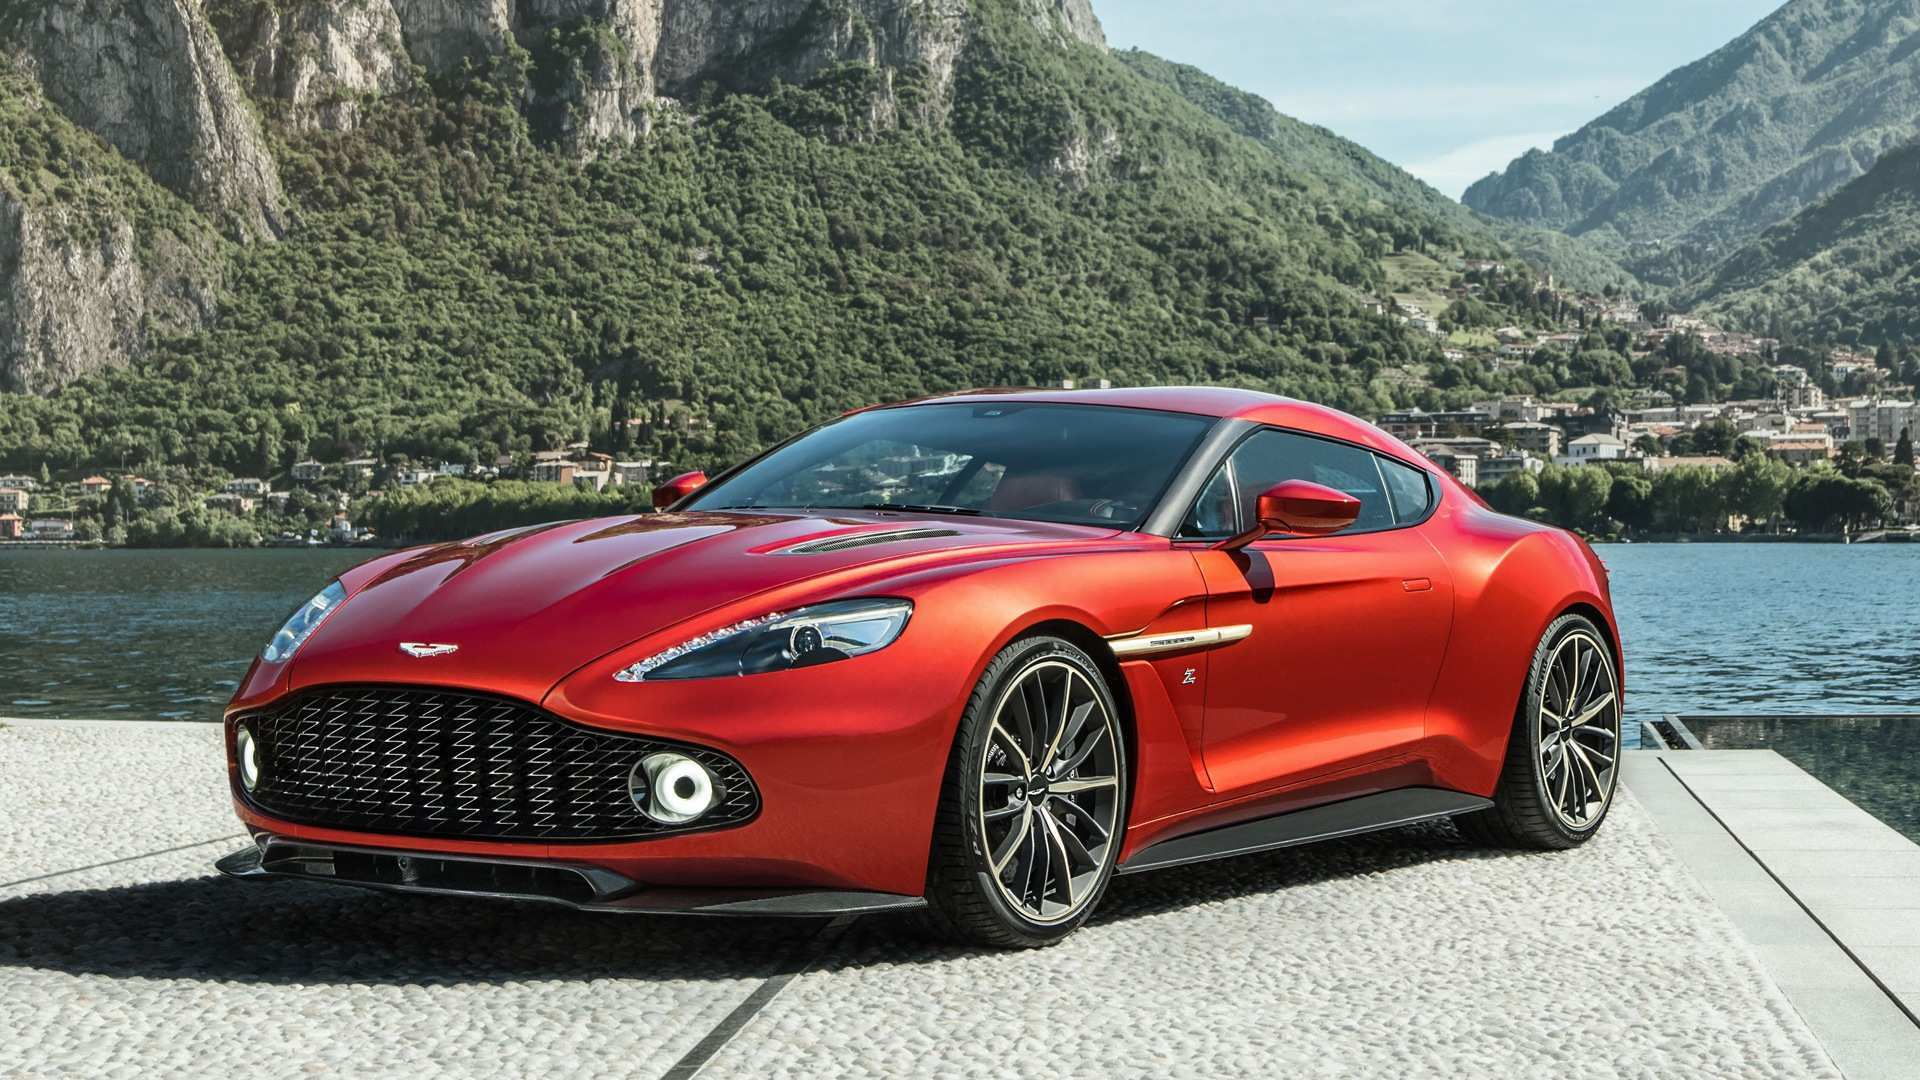 59 The Best 2019 Aston Martin Vanquish Performance And New Engine